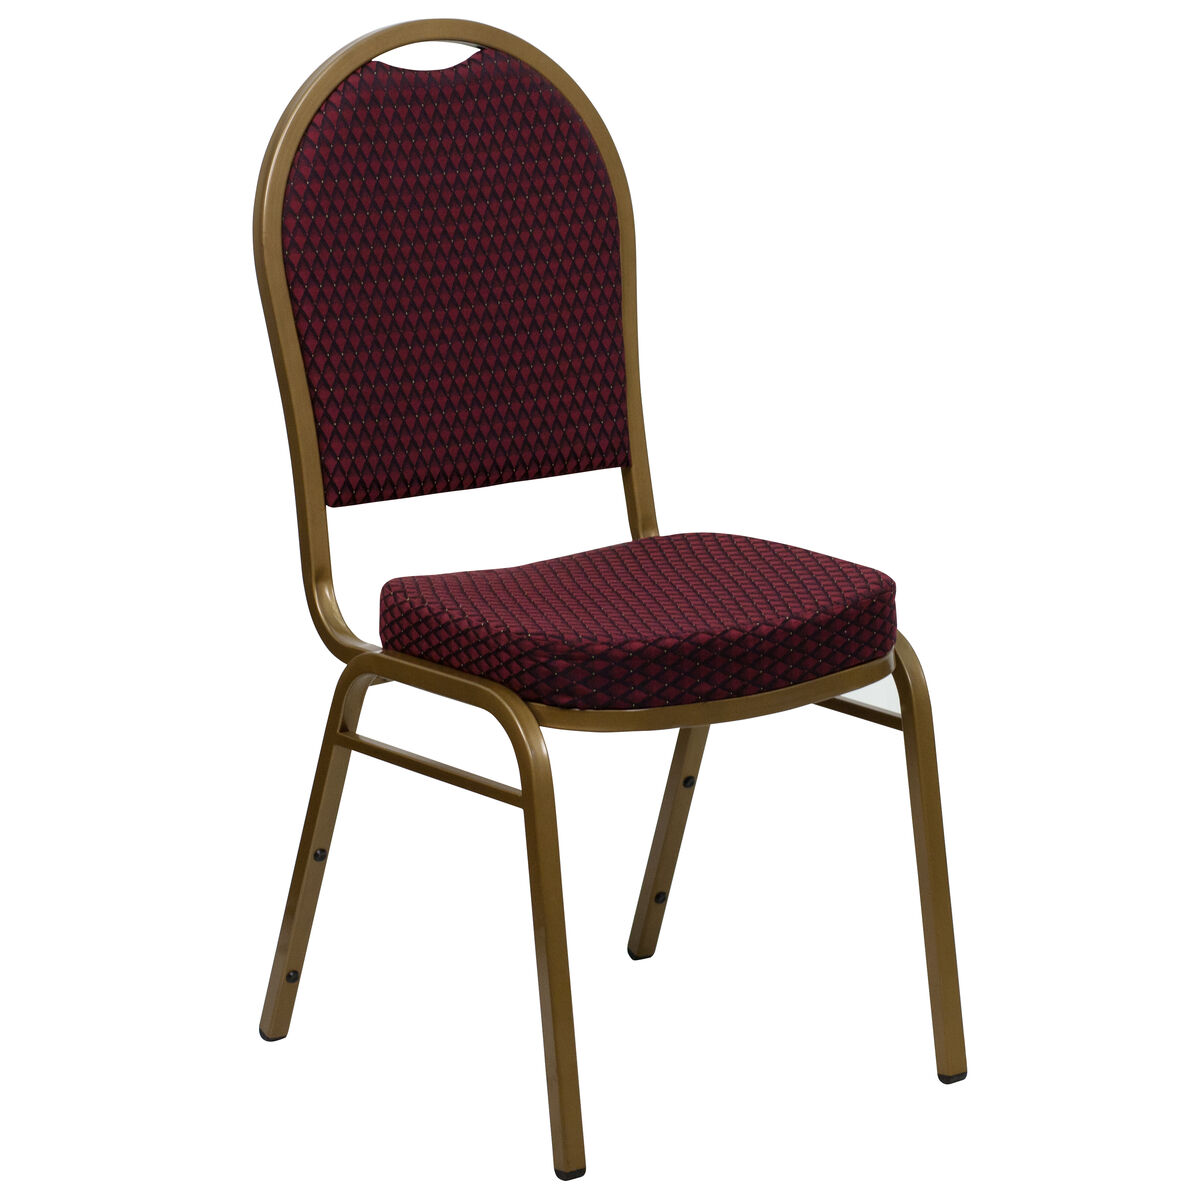 Dome Back Stacking Banquet Chair in Burgundy Patterned Fabric - Gold Frame